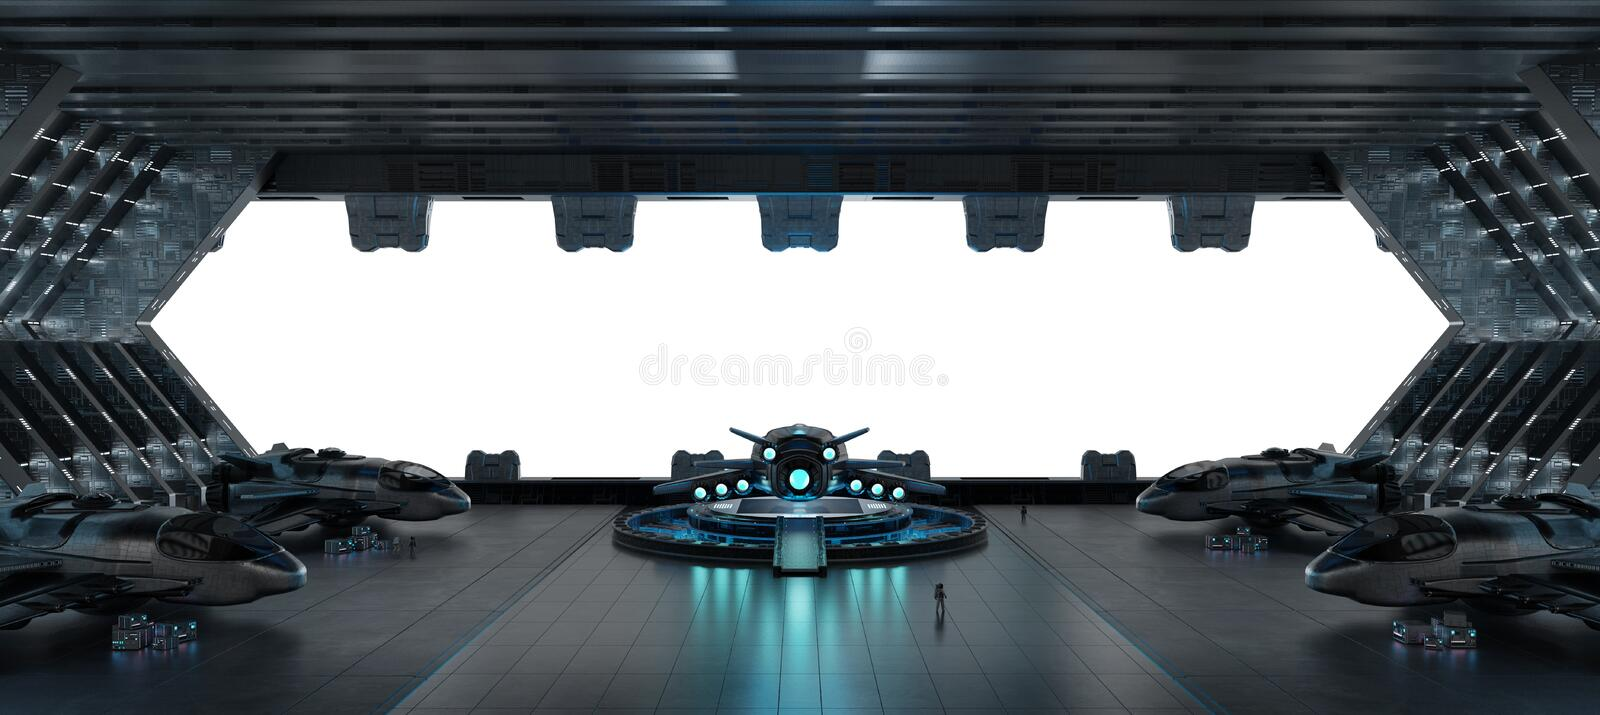 Llanding strip spaceship interior isolated on white background 3 royalty free illustration